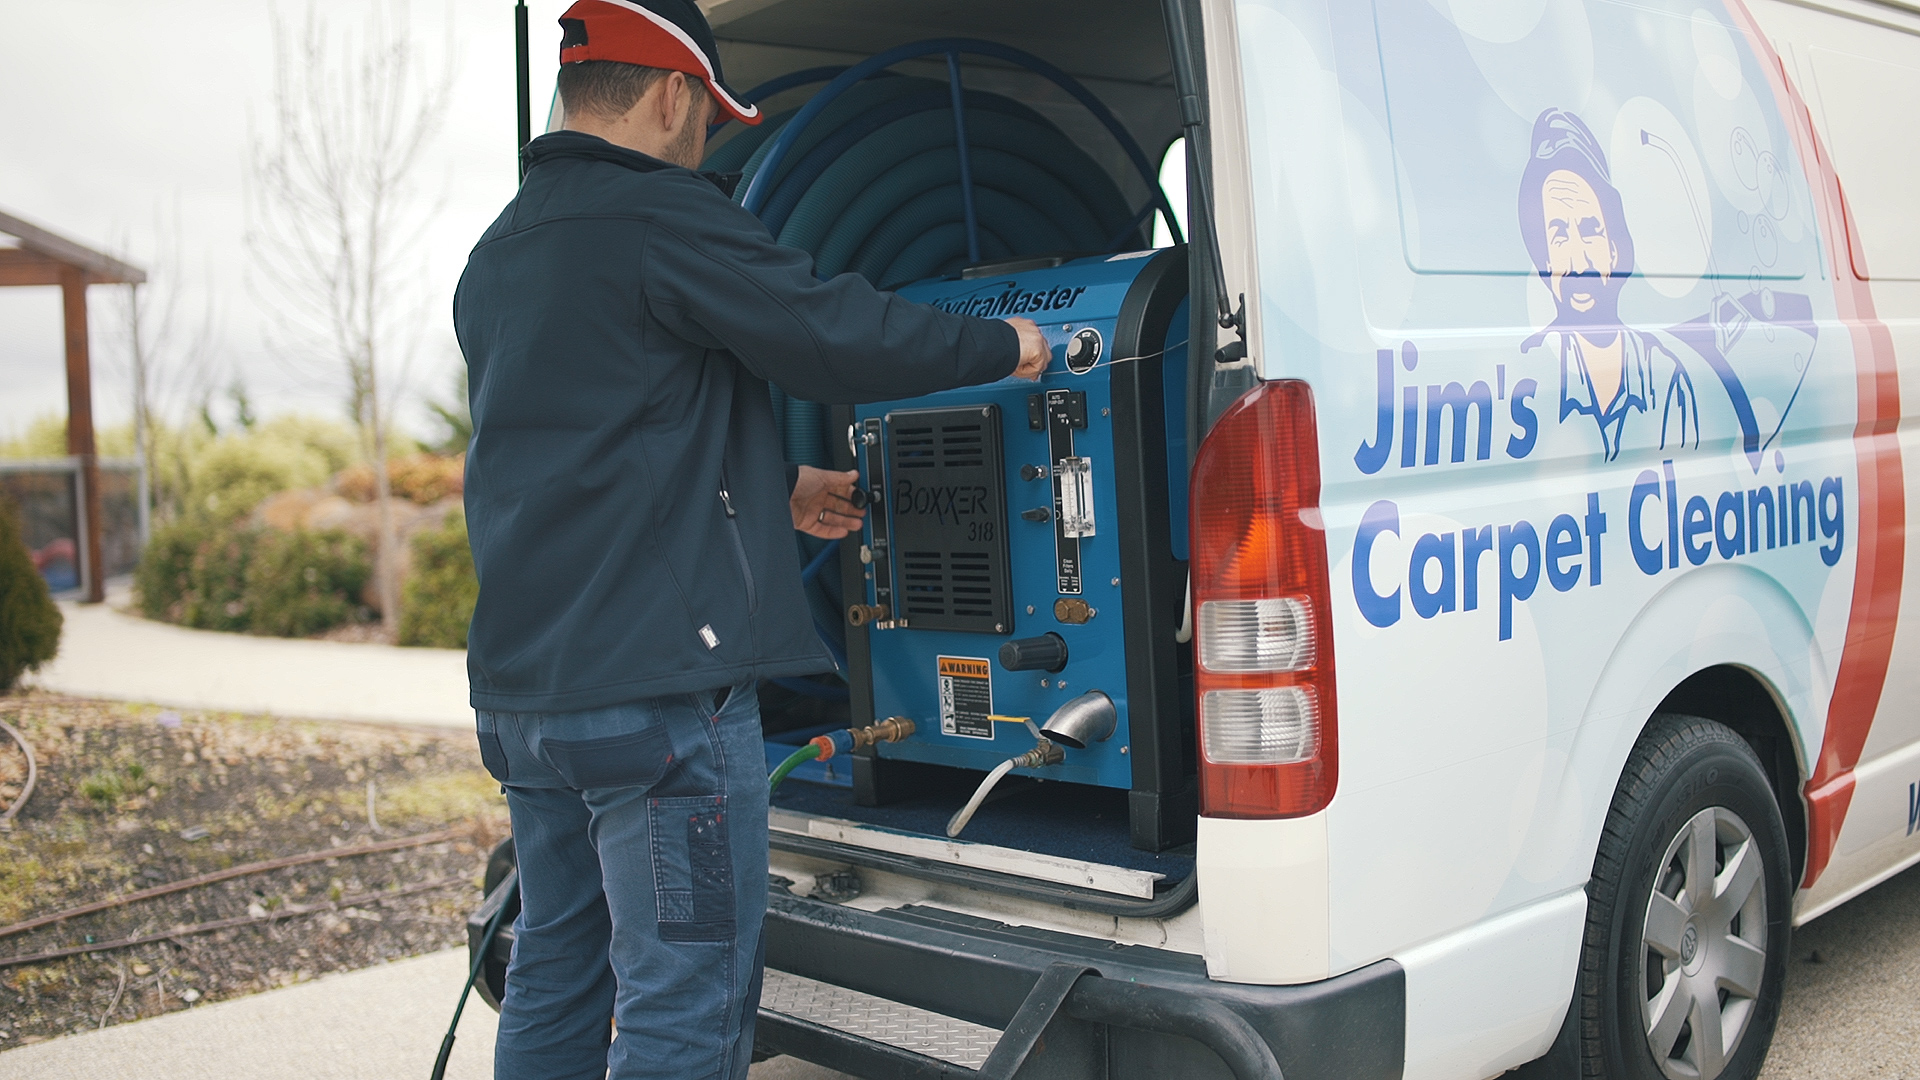 Jim's Carpet Cleaning Caroline Springs